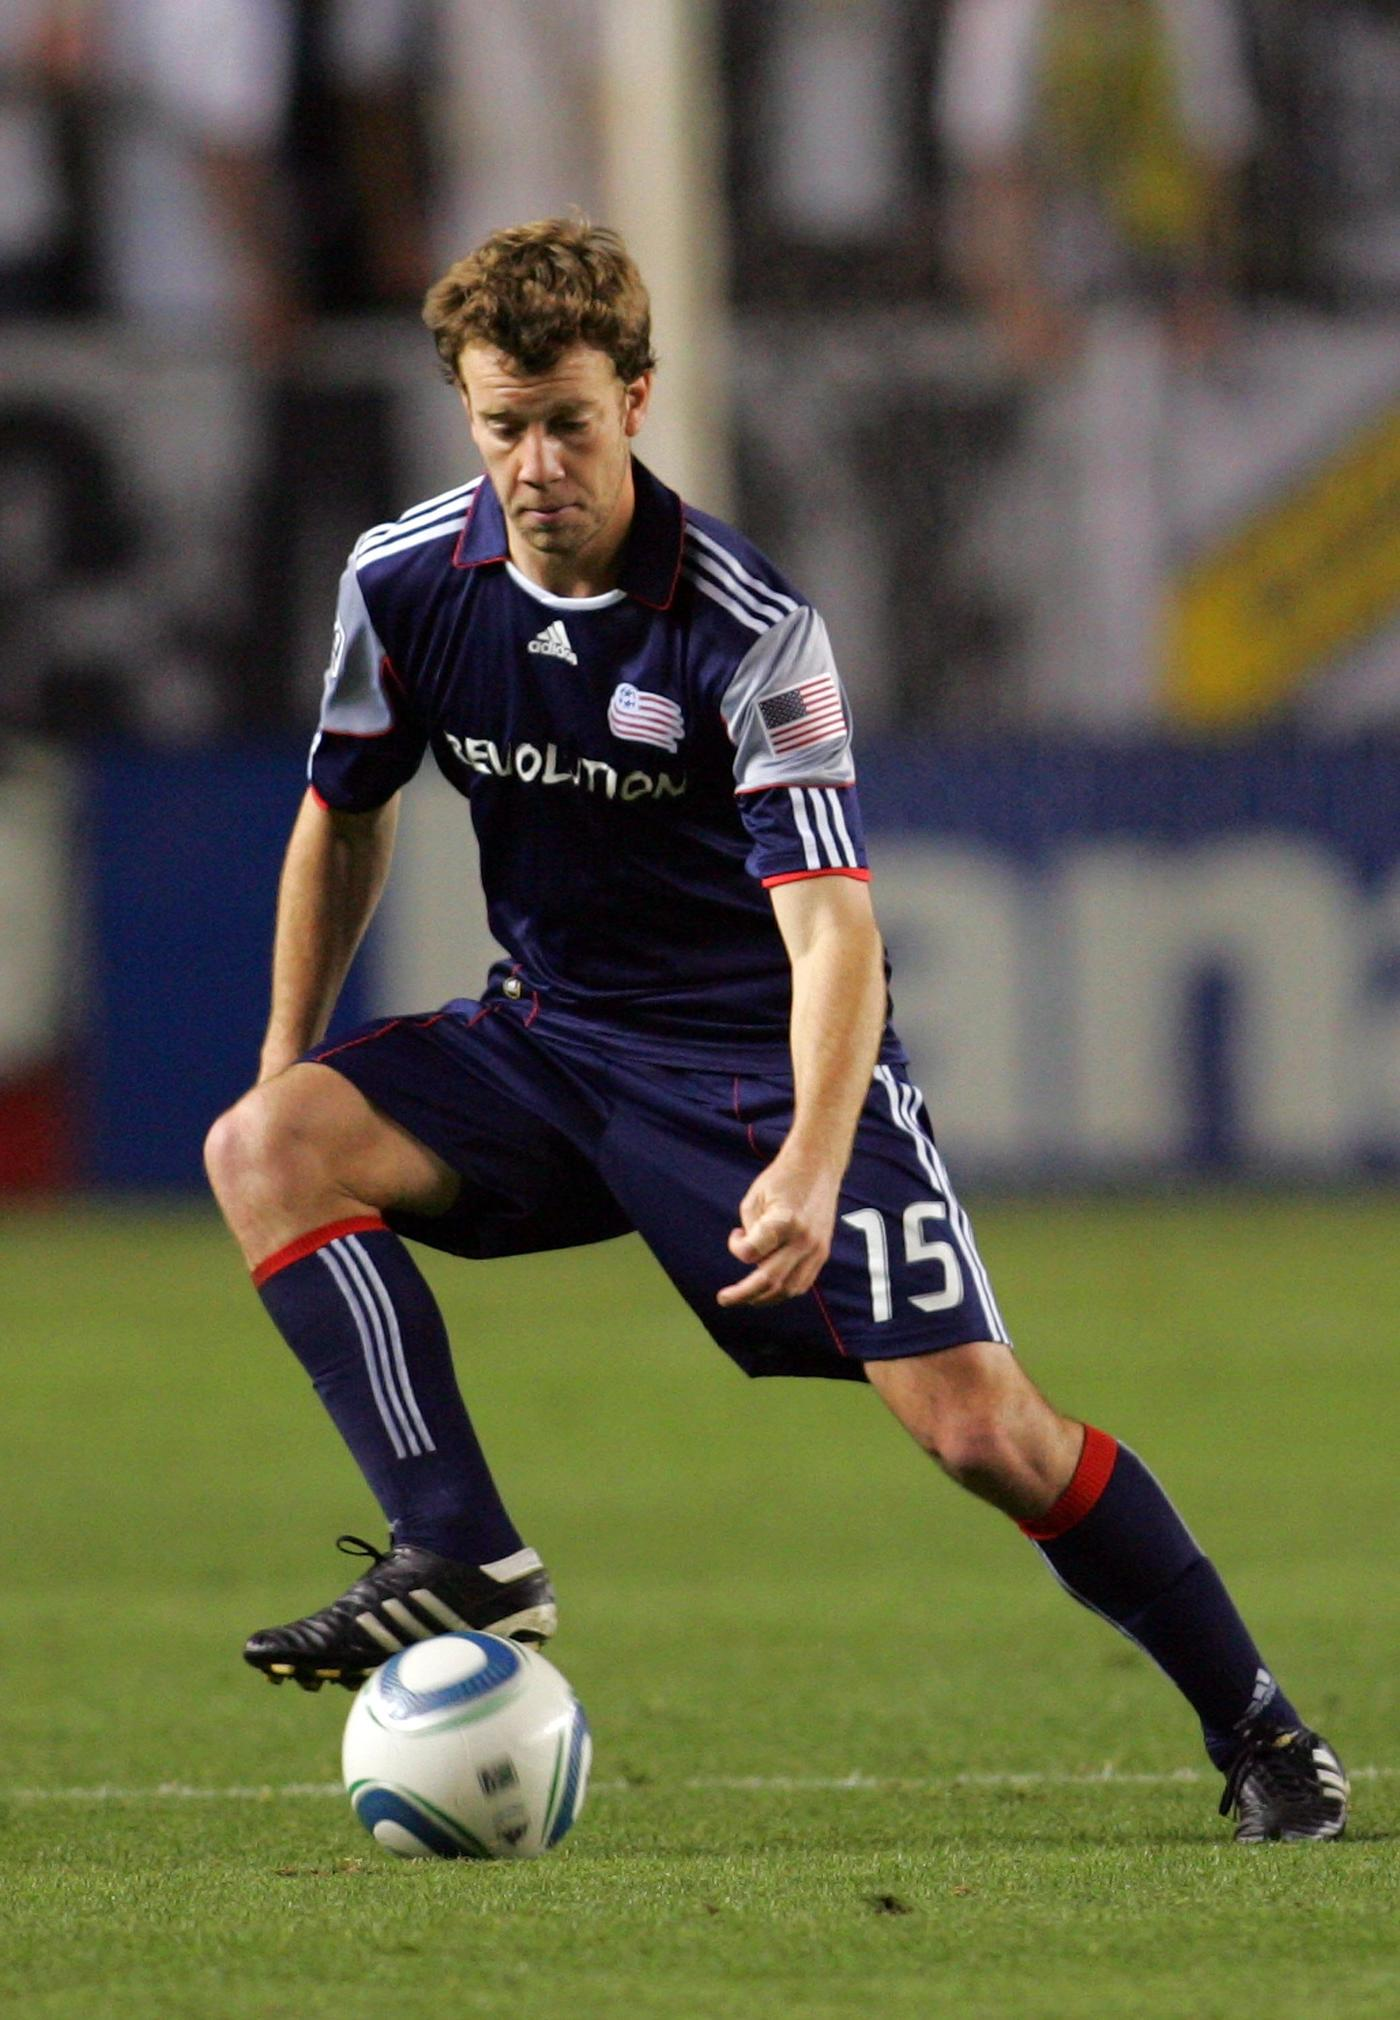 Zack Schilawski scored the Revolution's only goal in a 1-1 draw with FC Dallas on May 1